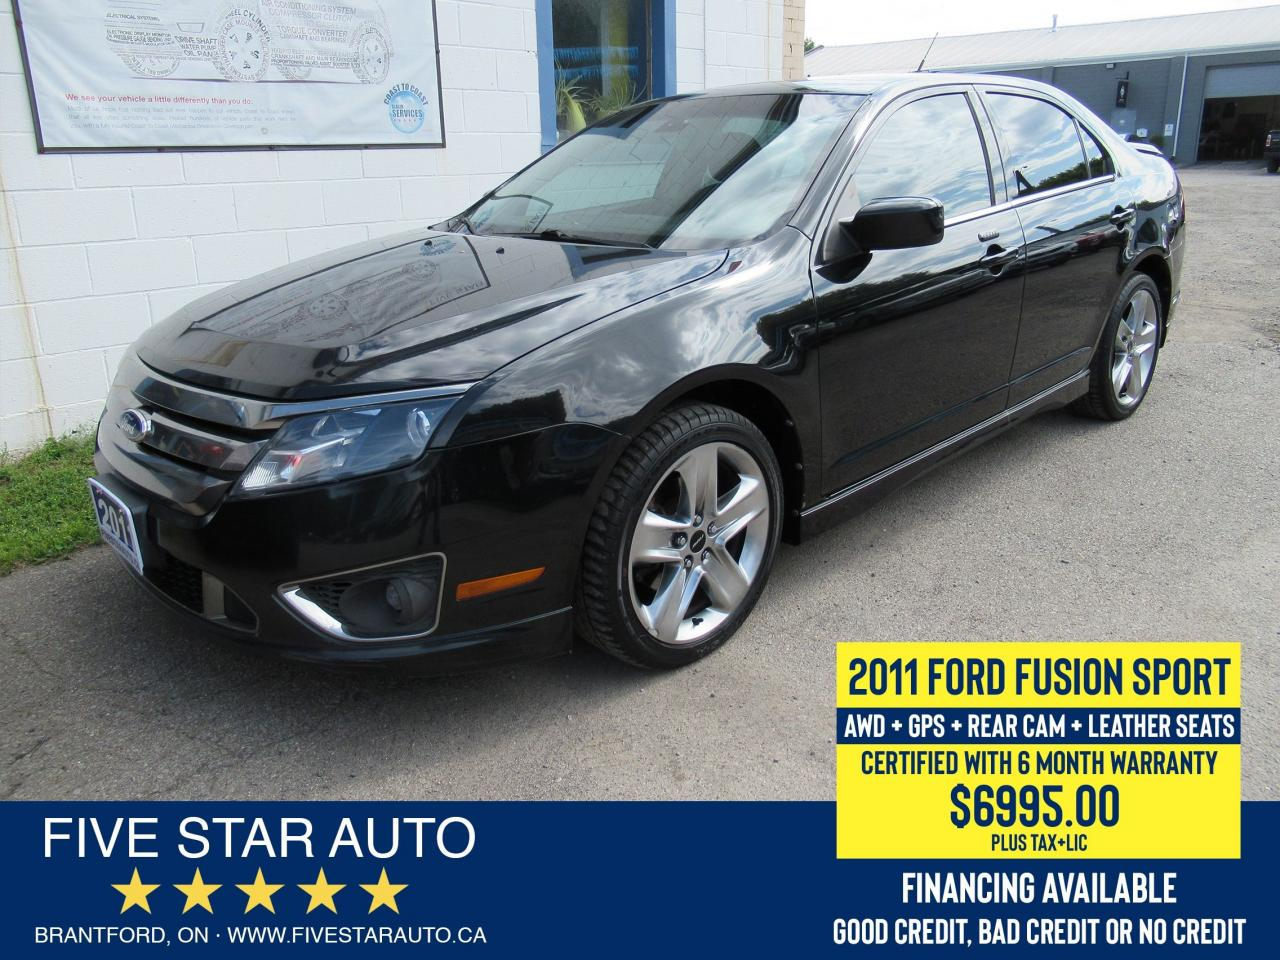 2011 Ford Fusion SPORT AWD - Certified w/ 6 Month Warranty